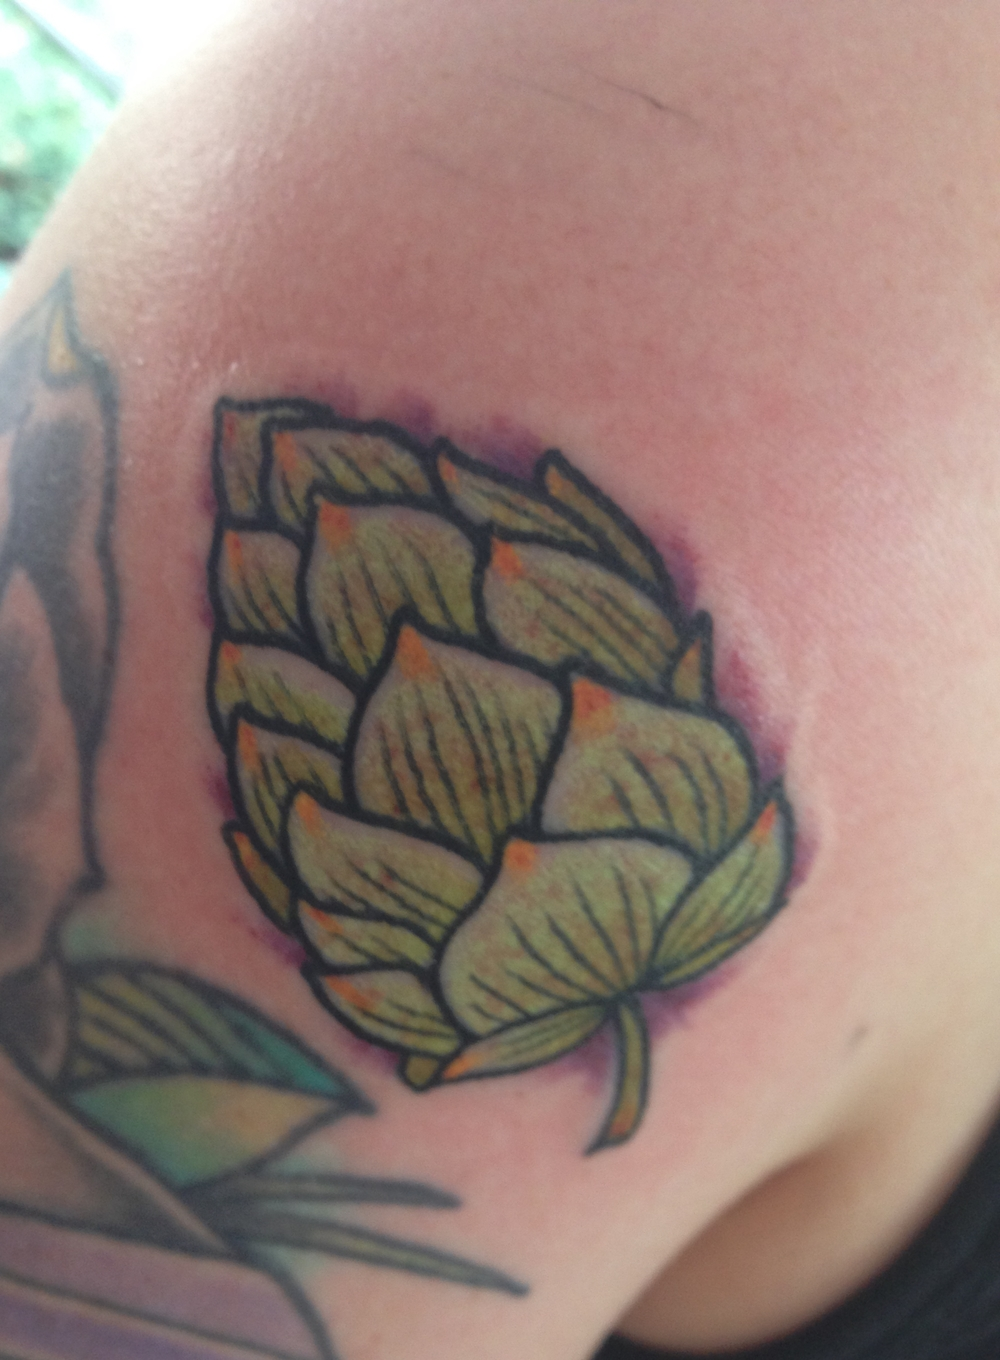 hops-for-beer-matt-lucci-tattoo.JPG